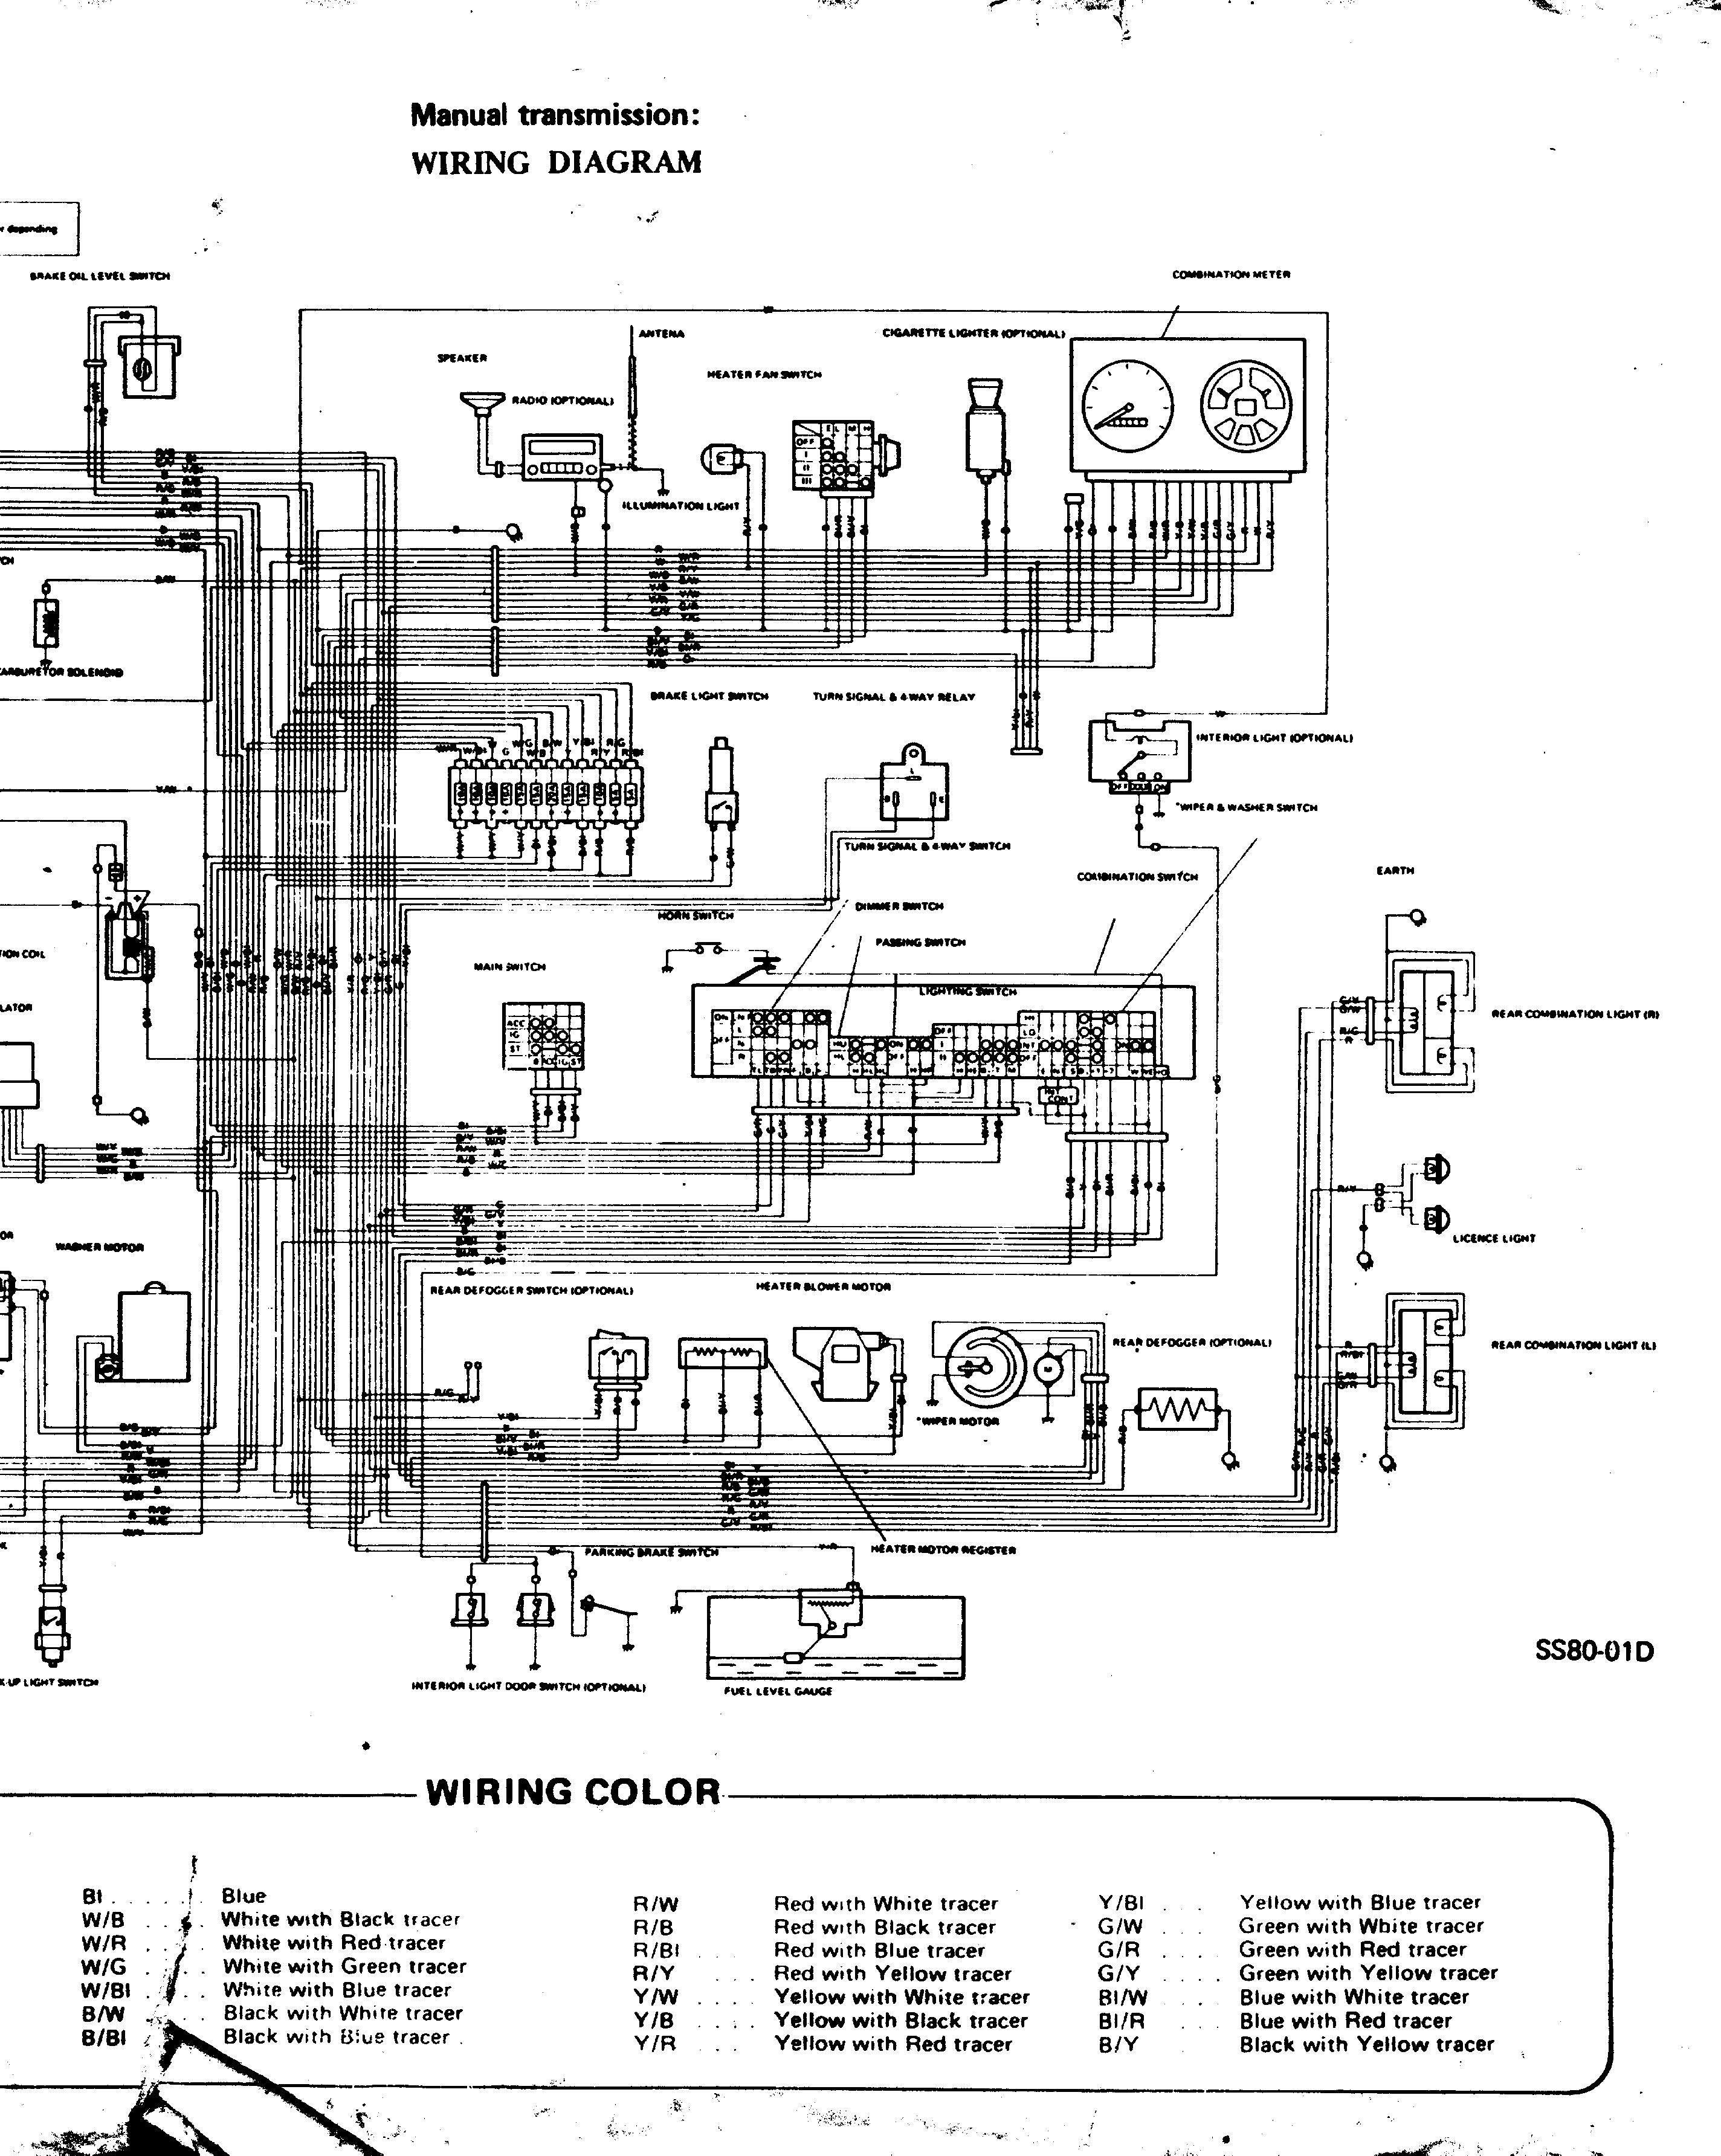 Ford F650 Wiring Schematic Simple Electrical Diagram For 2001 F 650 Harness Dodge Neon Fuse Wire Center